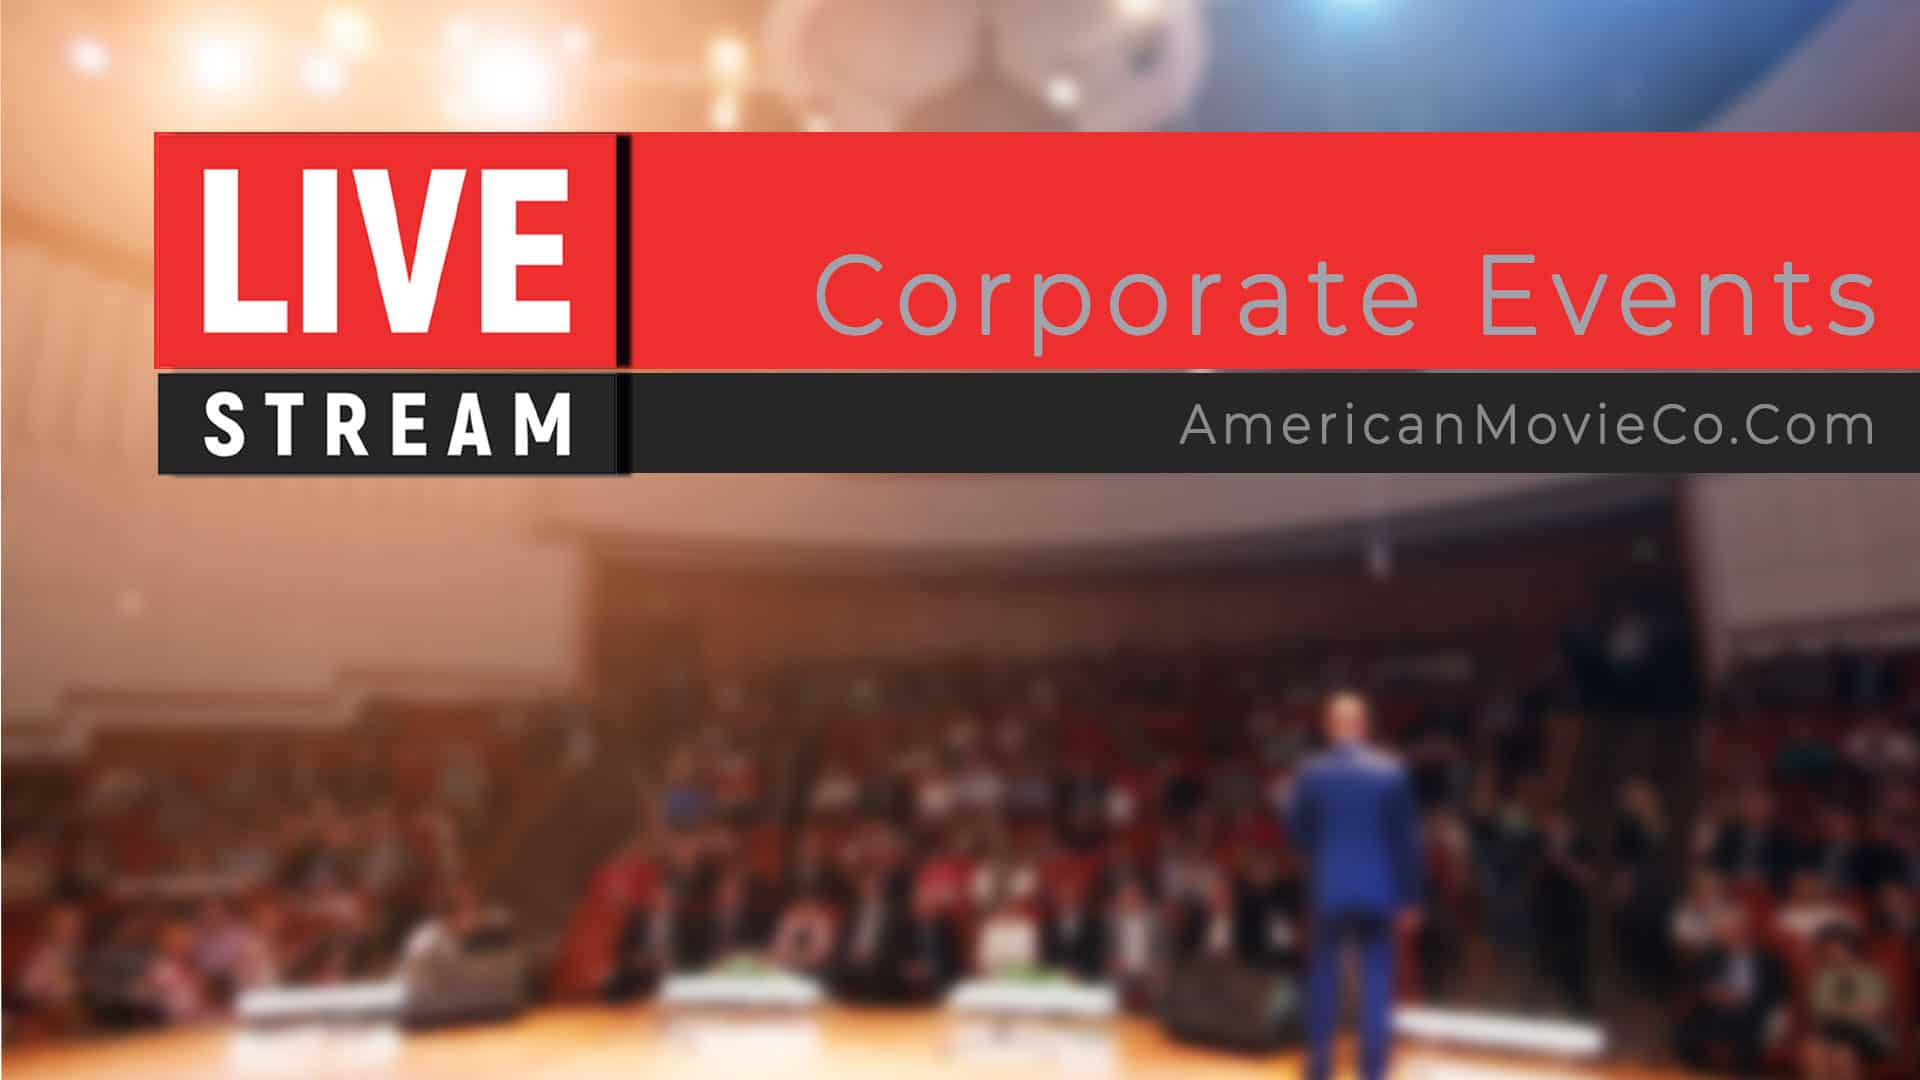 Live Streaming banner - background out of focus - Corporate Events